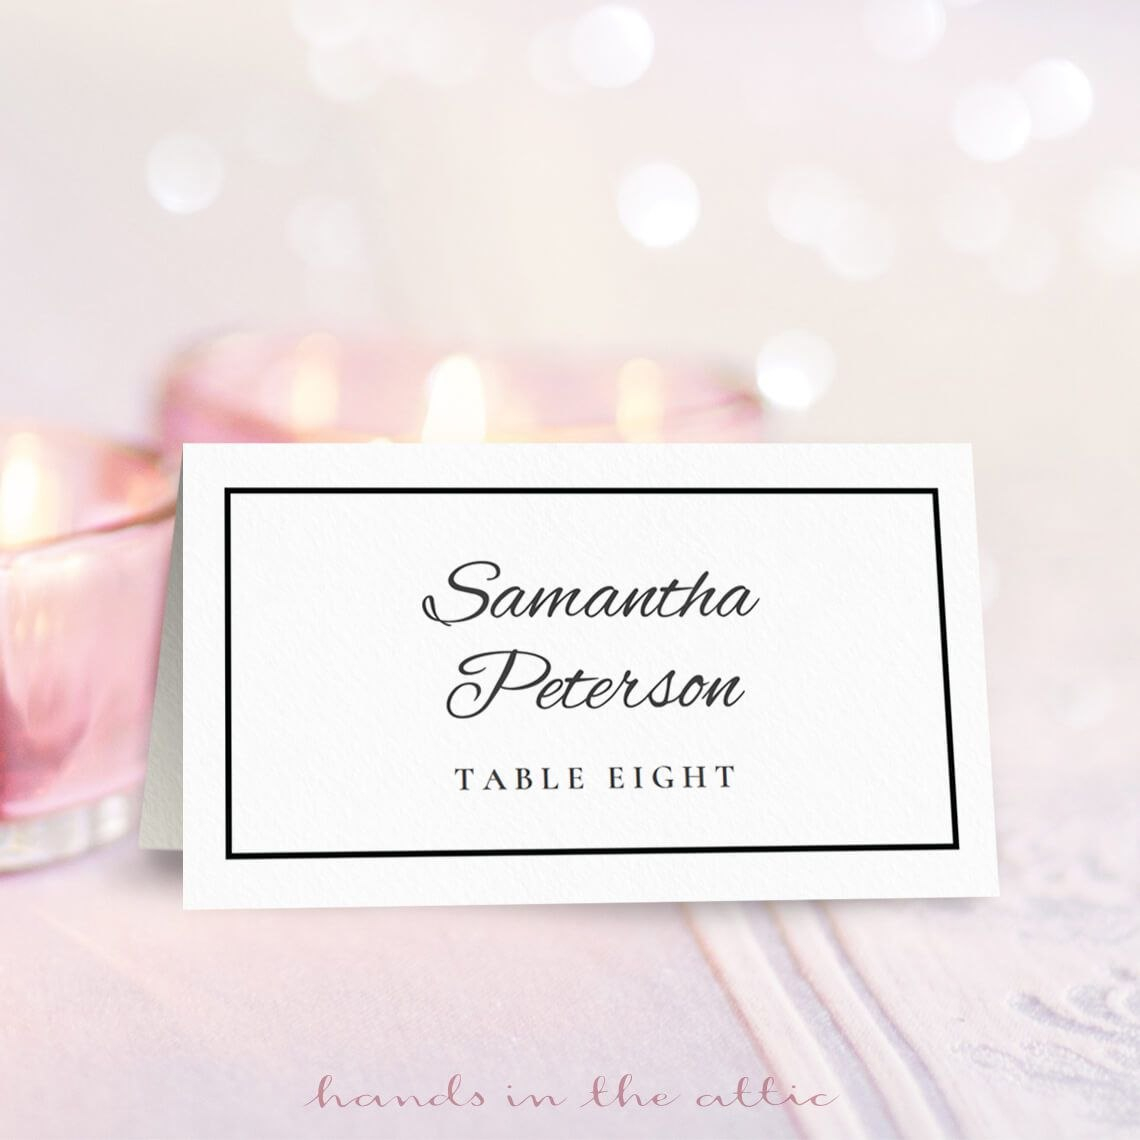 Free Wedding Place Card Templates Intended For Table Reservation Card Template